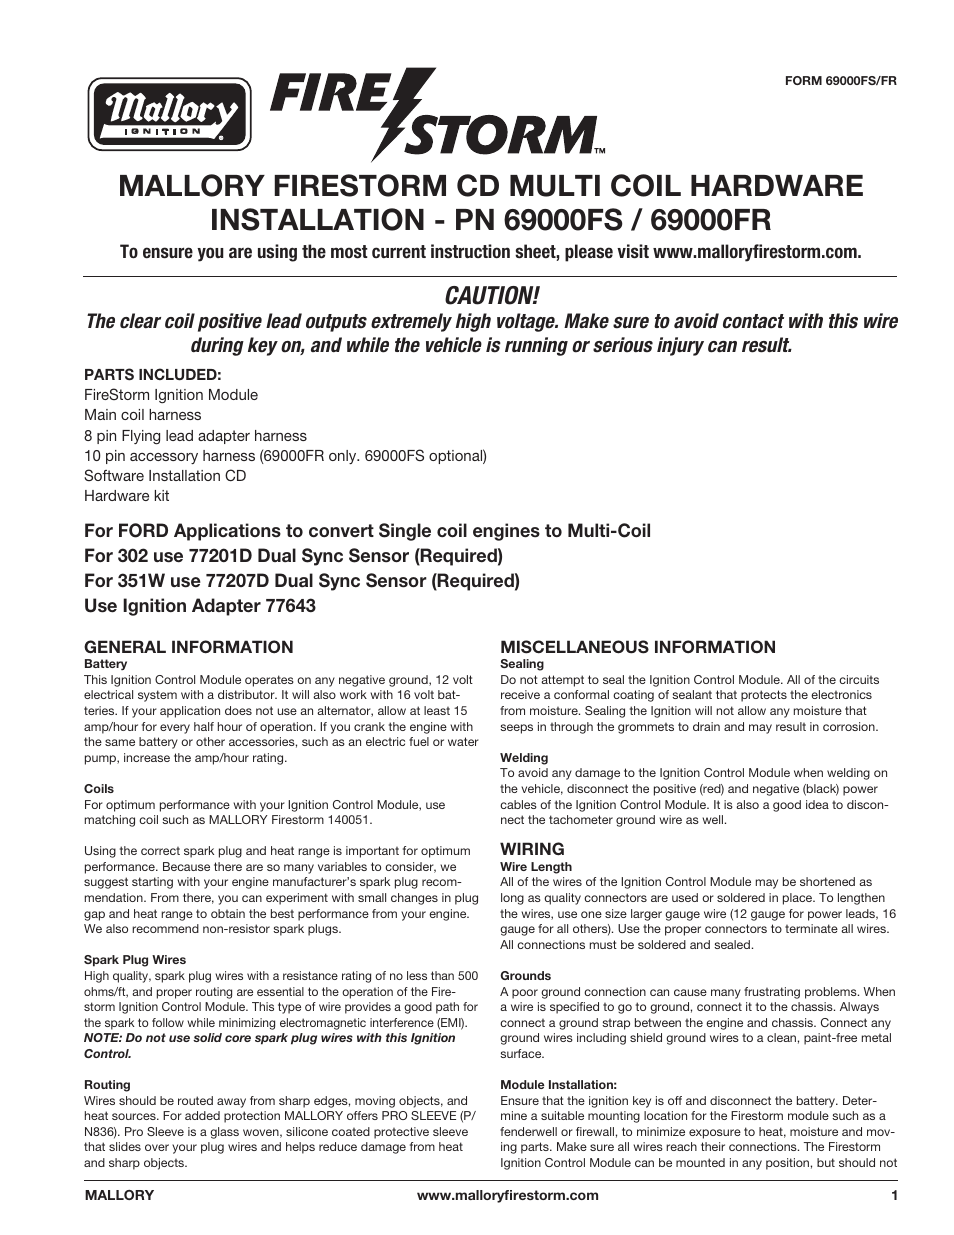 medium resolution of mallory ignition mallory firestorm cd multi coil hardware 69000fs mallory firestorm wiring diagram